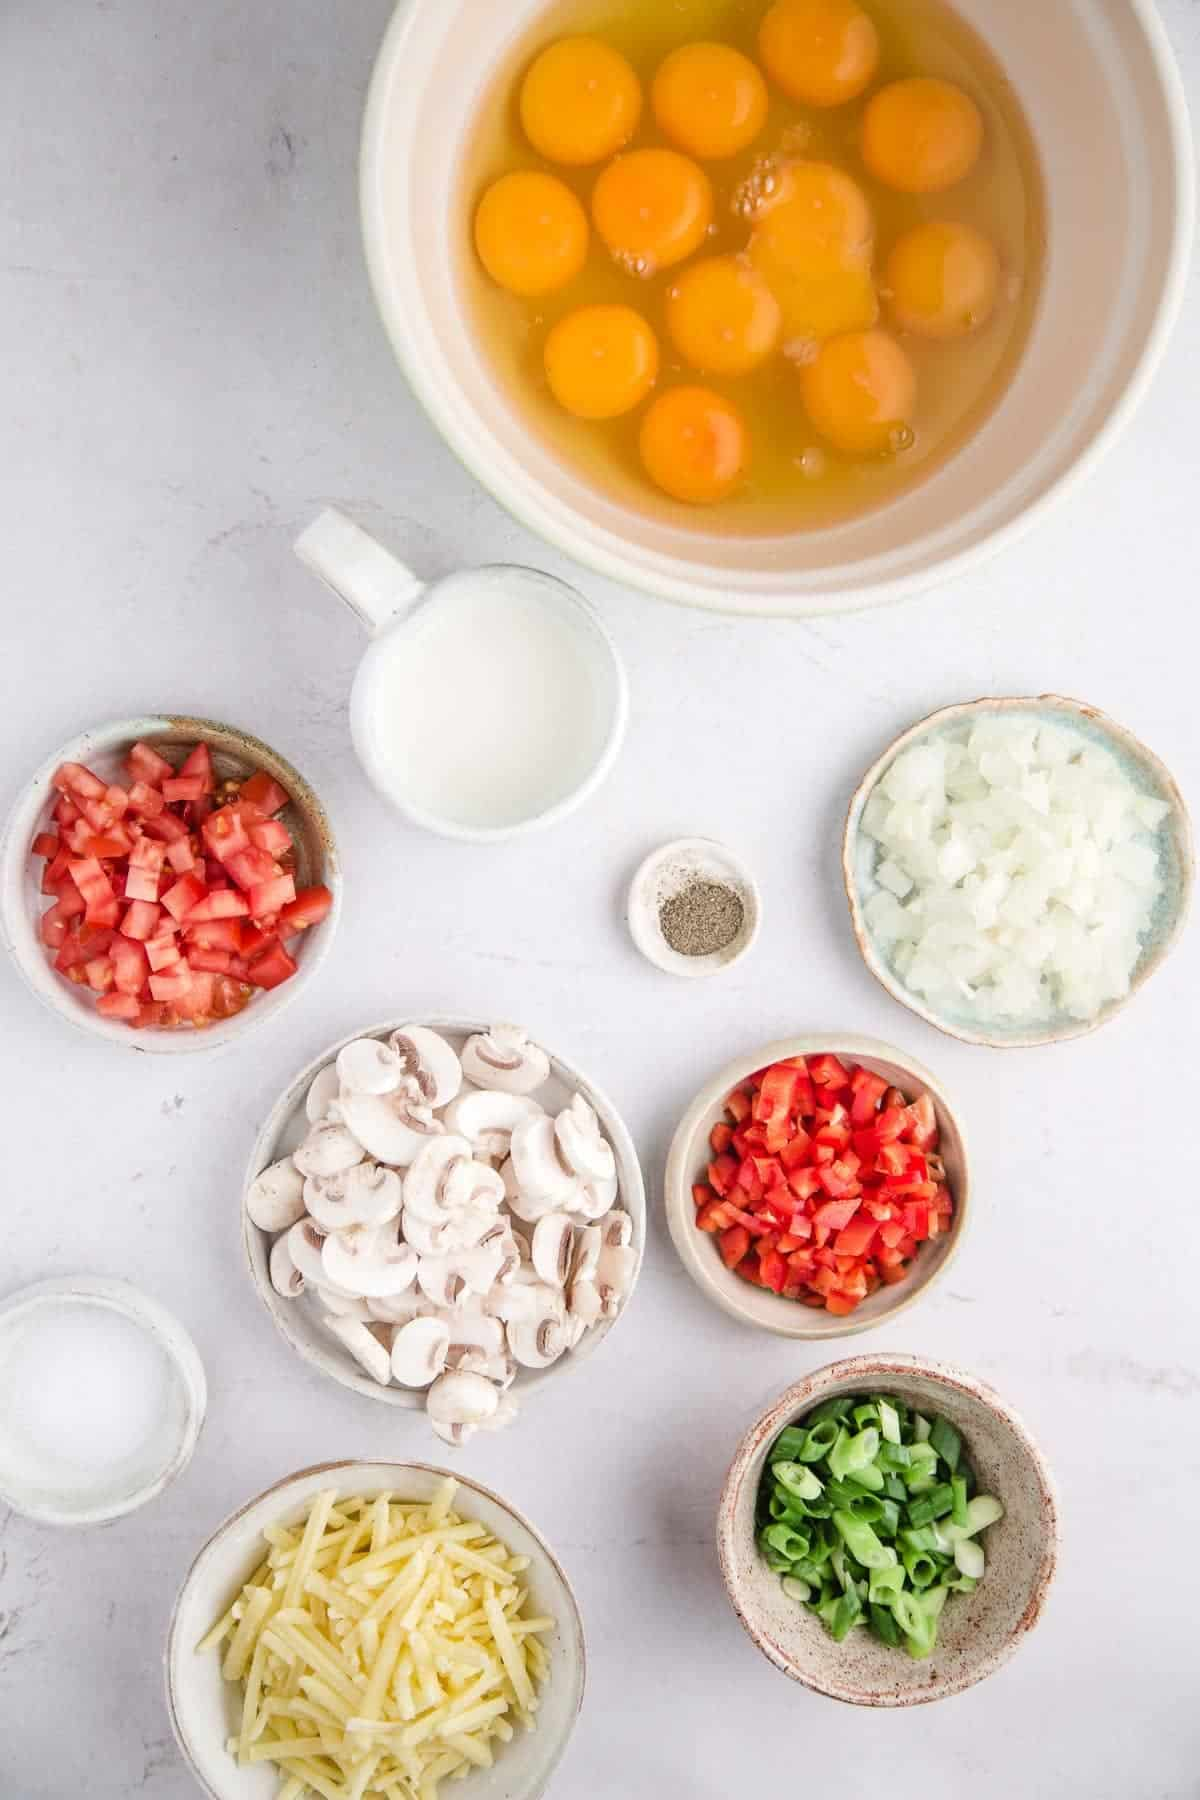 Ingredients for sheet pan eggs